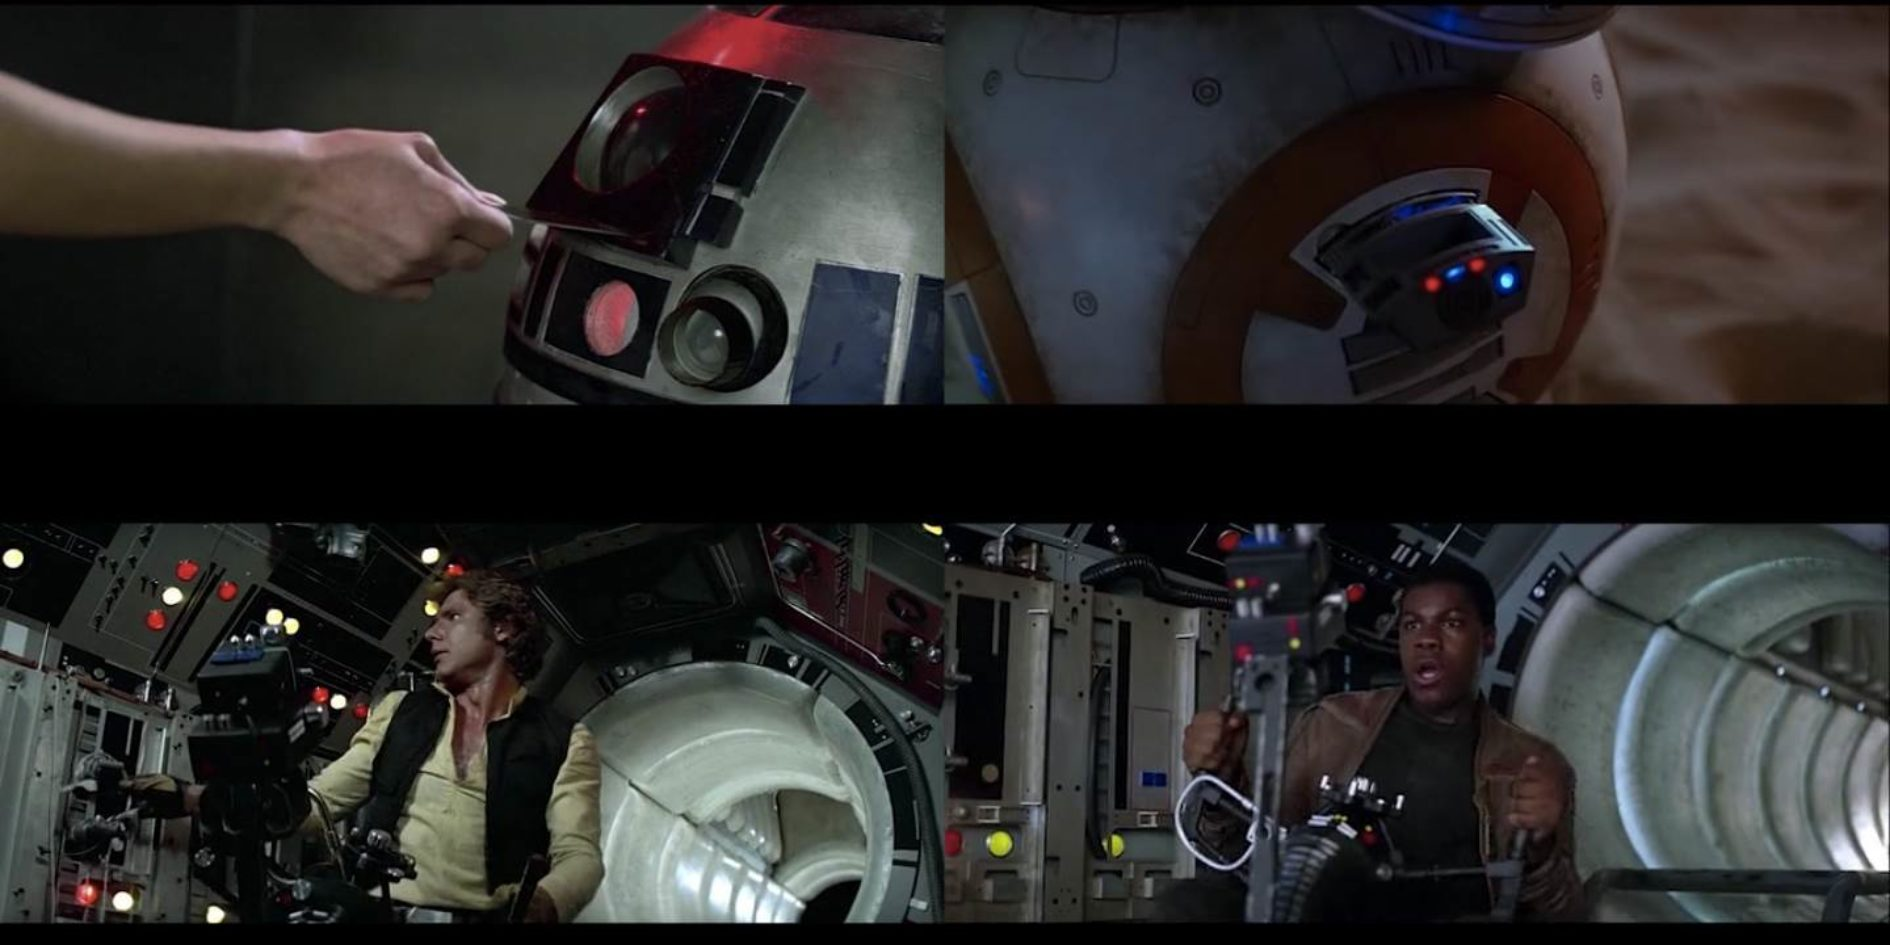 """A New Awakening"" - Star Wars Episode IV and VII Shot Comparison"